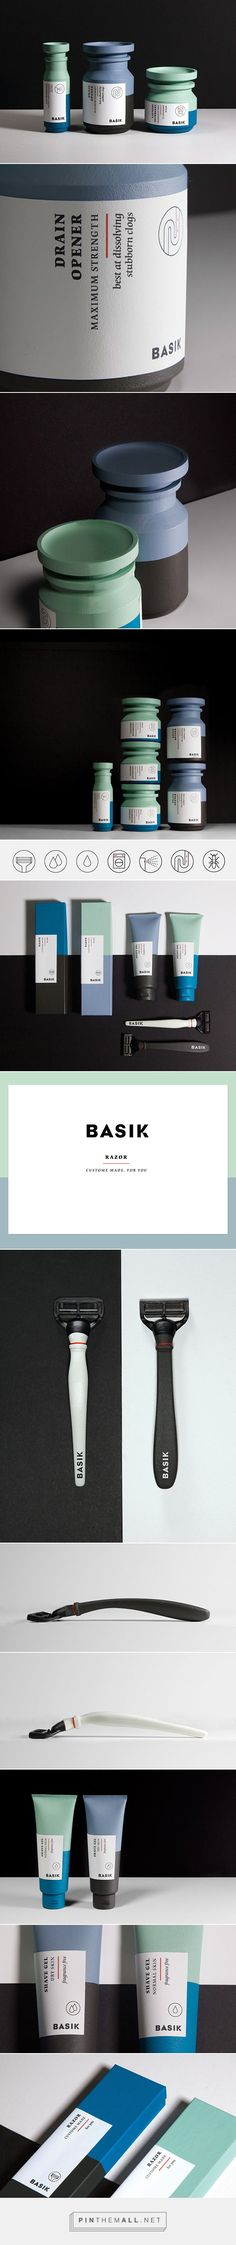 "BASIK packaging designed by Saana Hellsten with gender neutral themes in mind - ""Packaging design is our first interaction with a product and it currently perpetuates gender stereotypes. Designing gender-neutral packaging will encourage gender equality and will create a more sustainable world."""